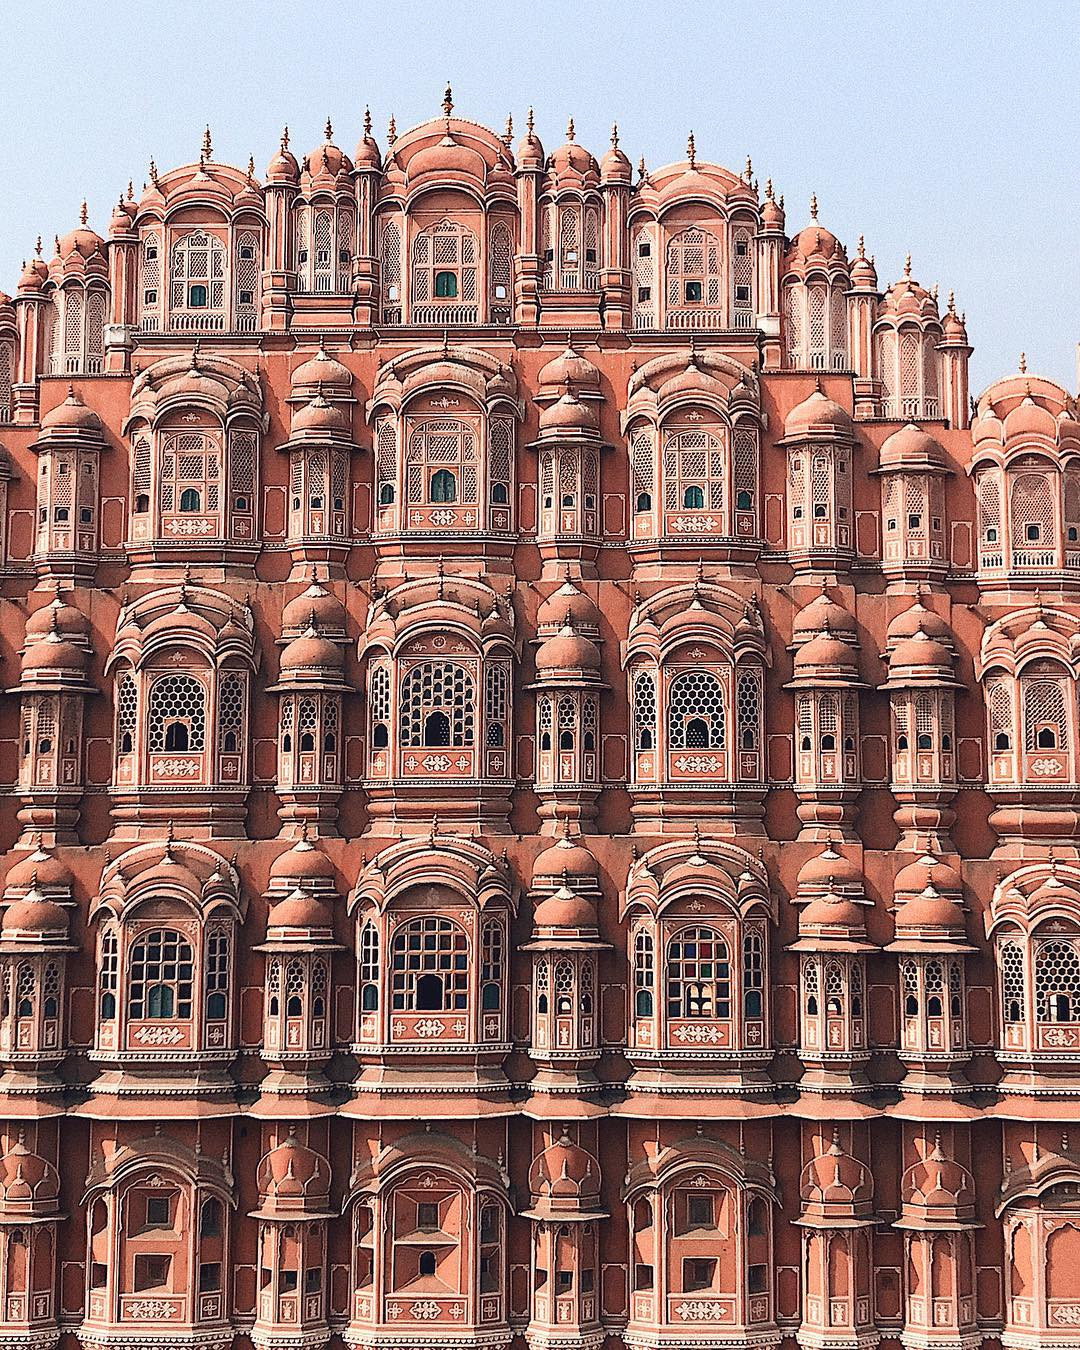 Hawa Mahal palace (Palace of the Winds), Jaipur, India. @the_zlist